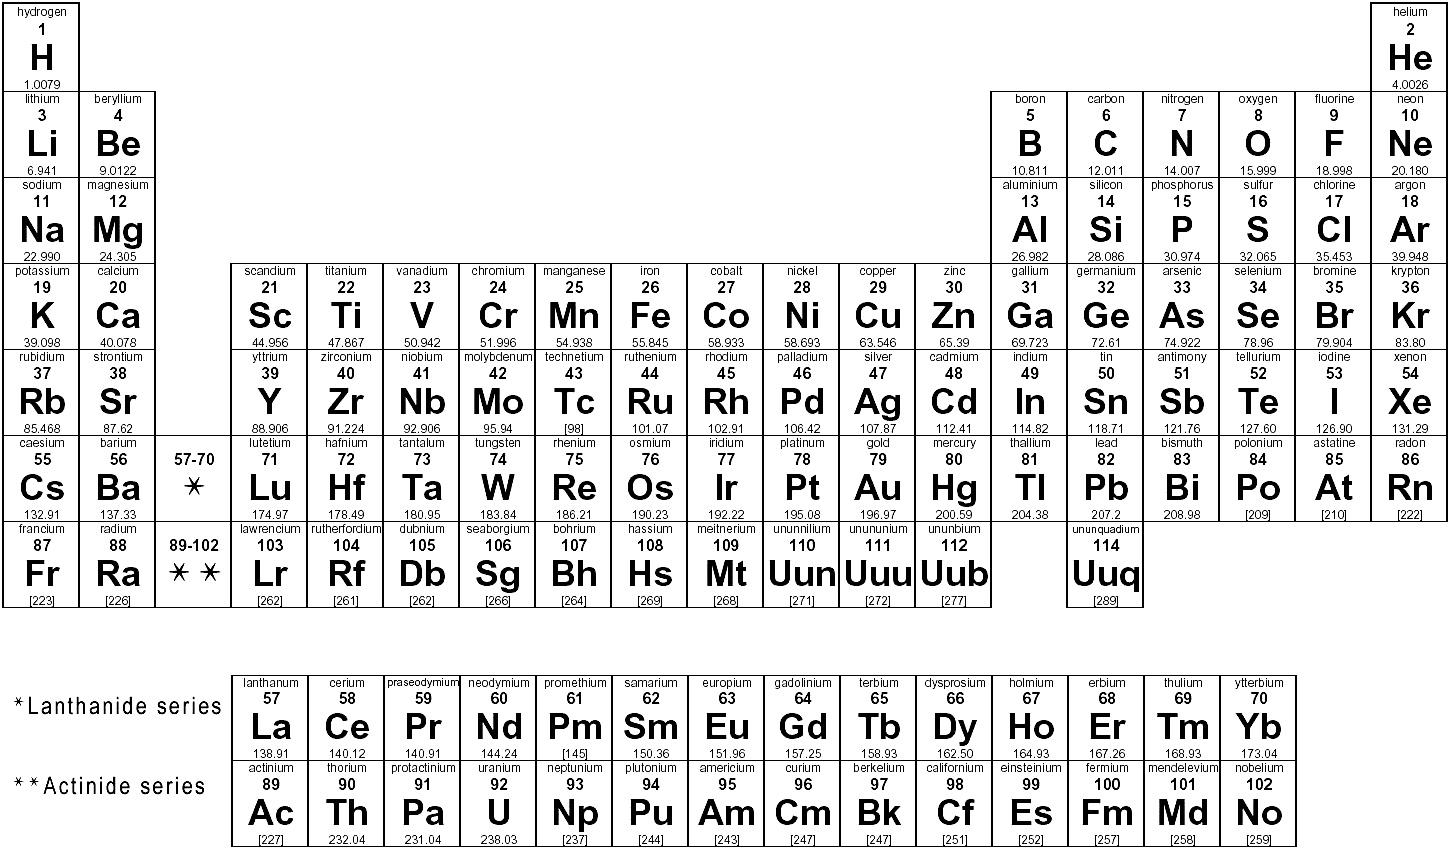 Worksheet on periodic table for middle school images periodic r on periodic table gallery periodic table images r on periodic table image collections periodic table gamestrikefo Images